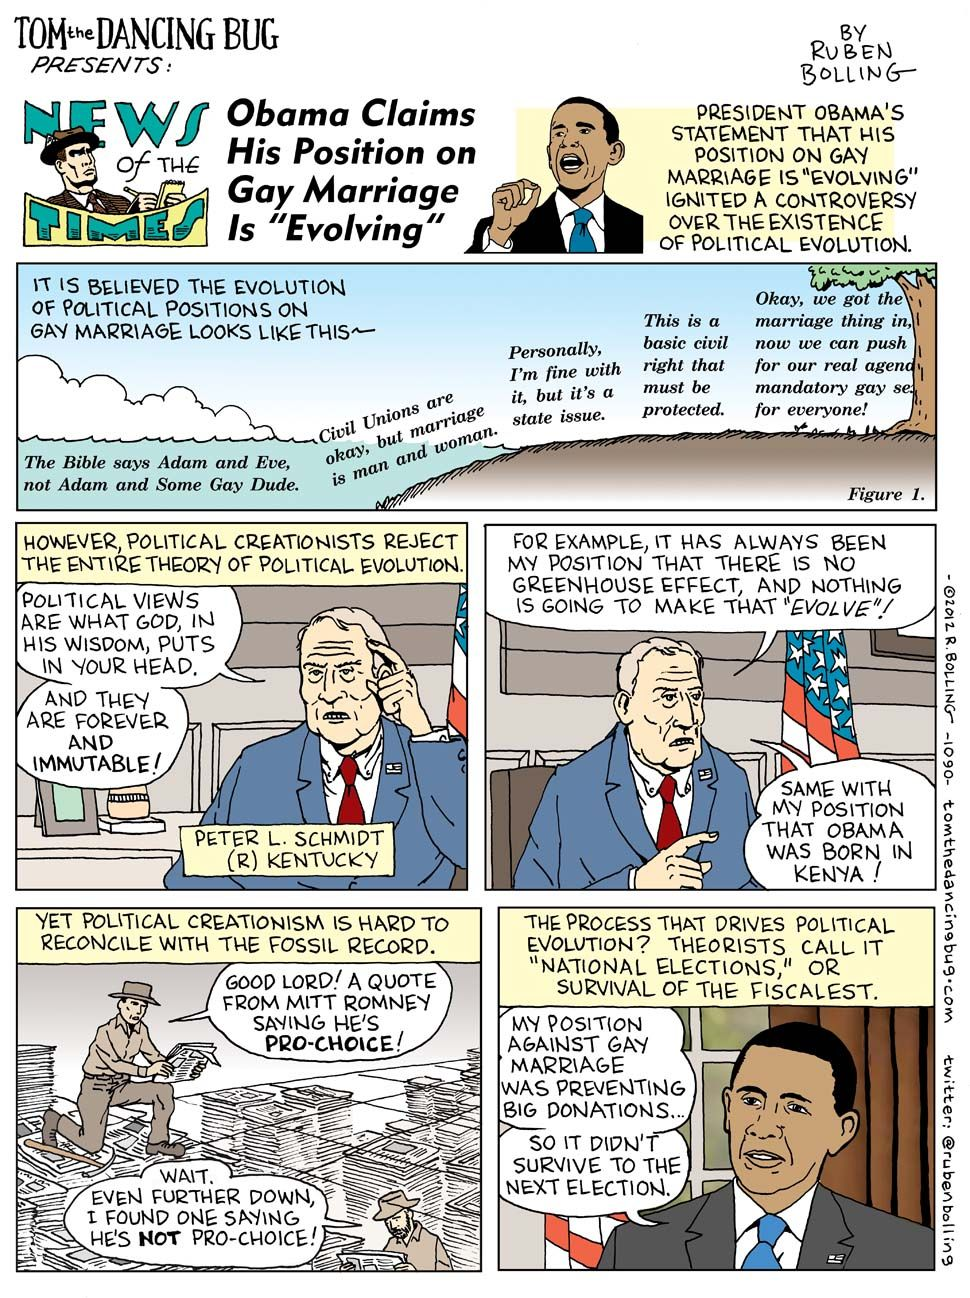 "TOM THE DANCING BUG: Obama Sparks Creationism Controversy With ""Evolution"" of His Gay Marriage Position - Boing Boing"